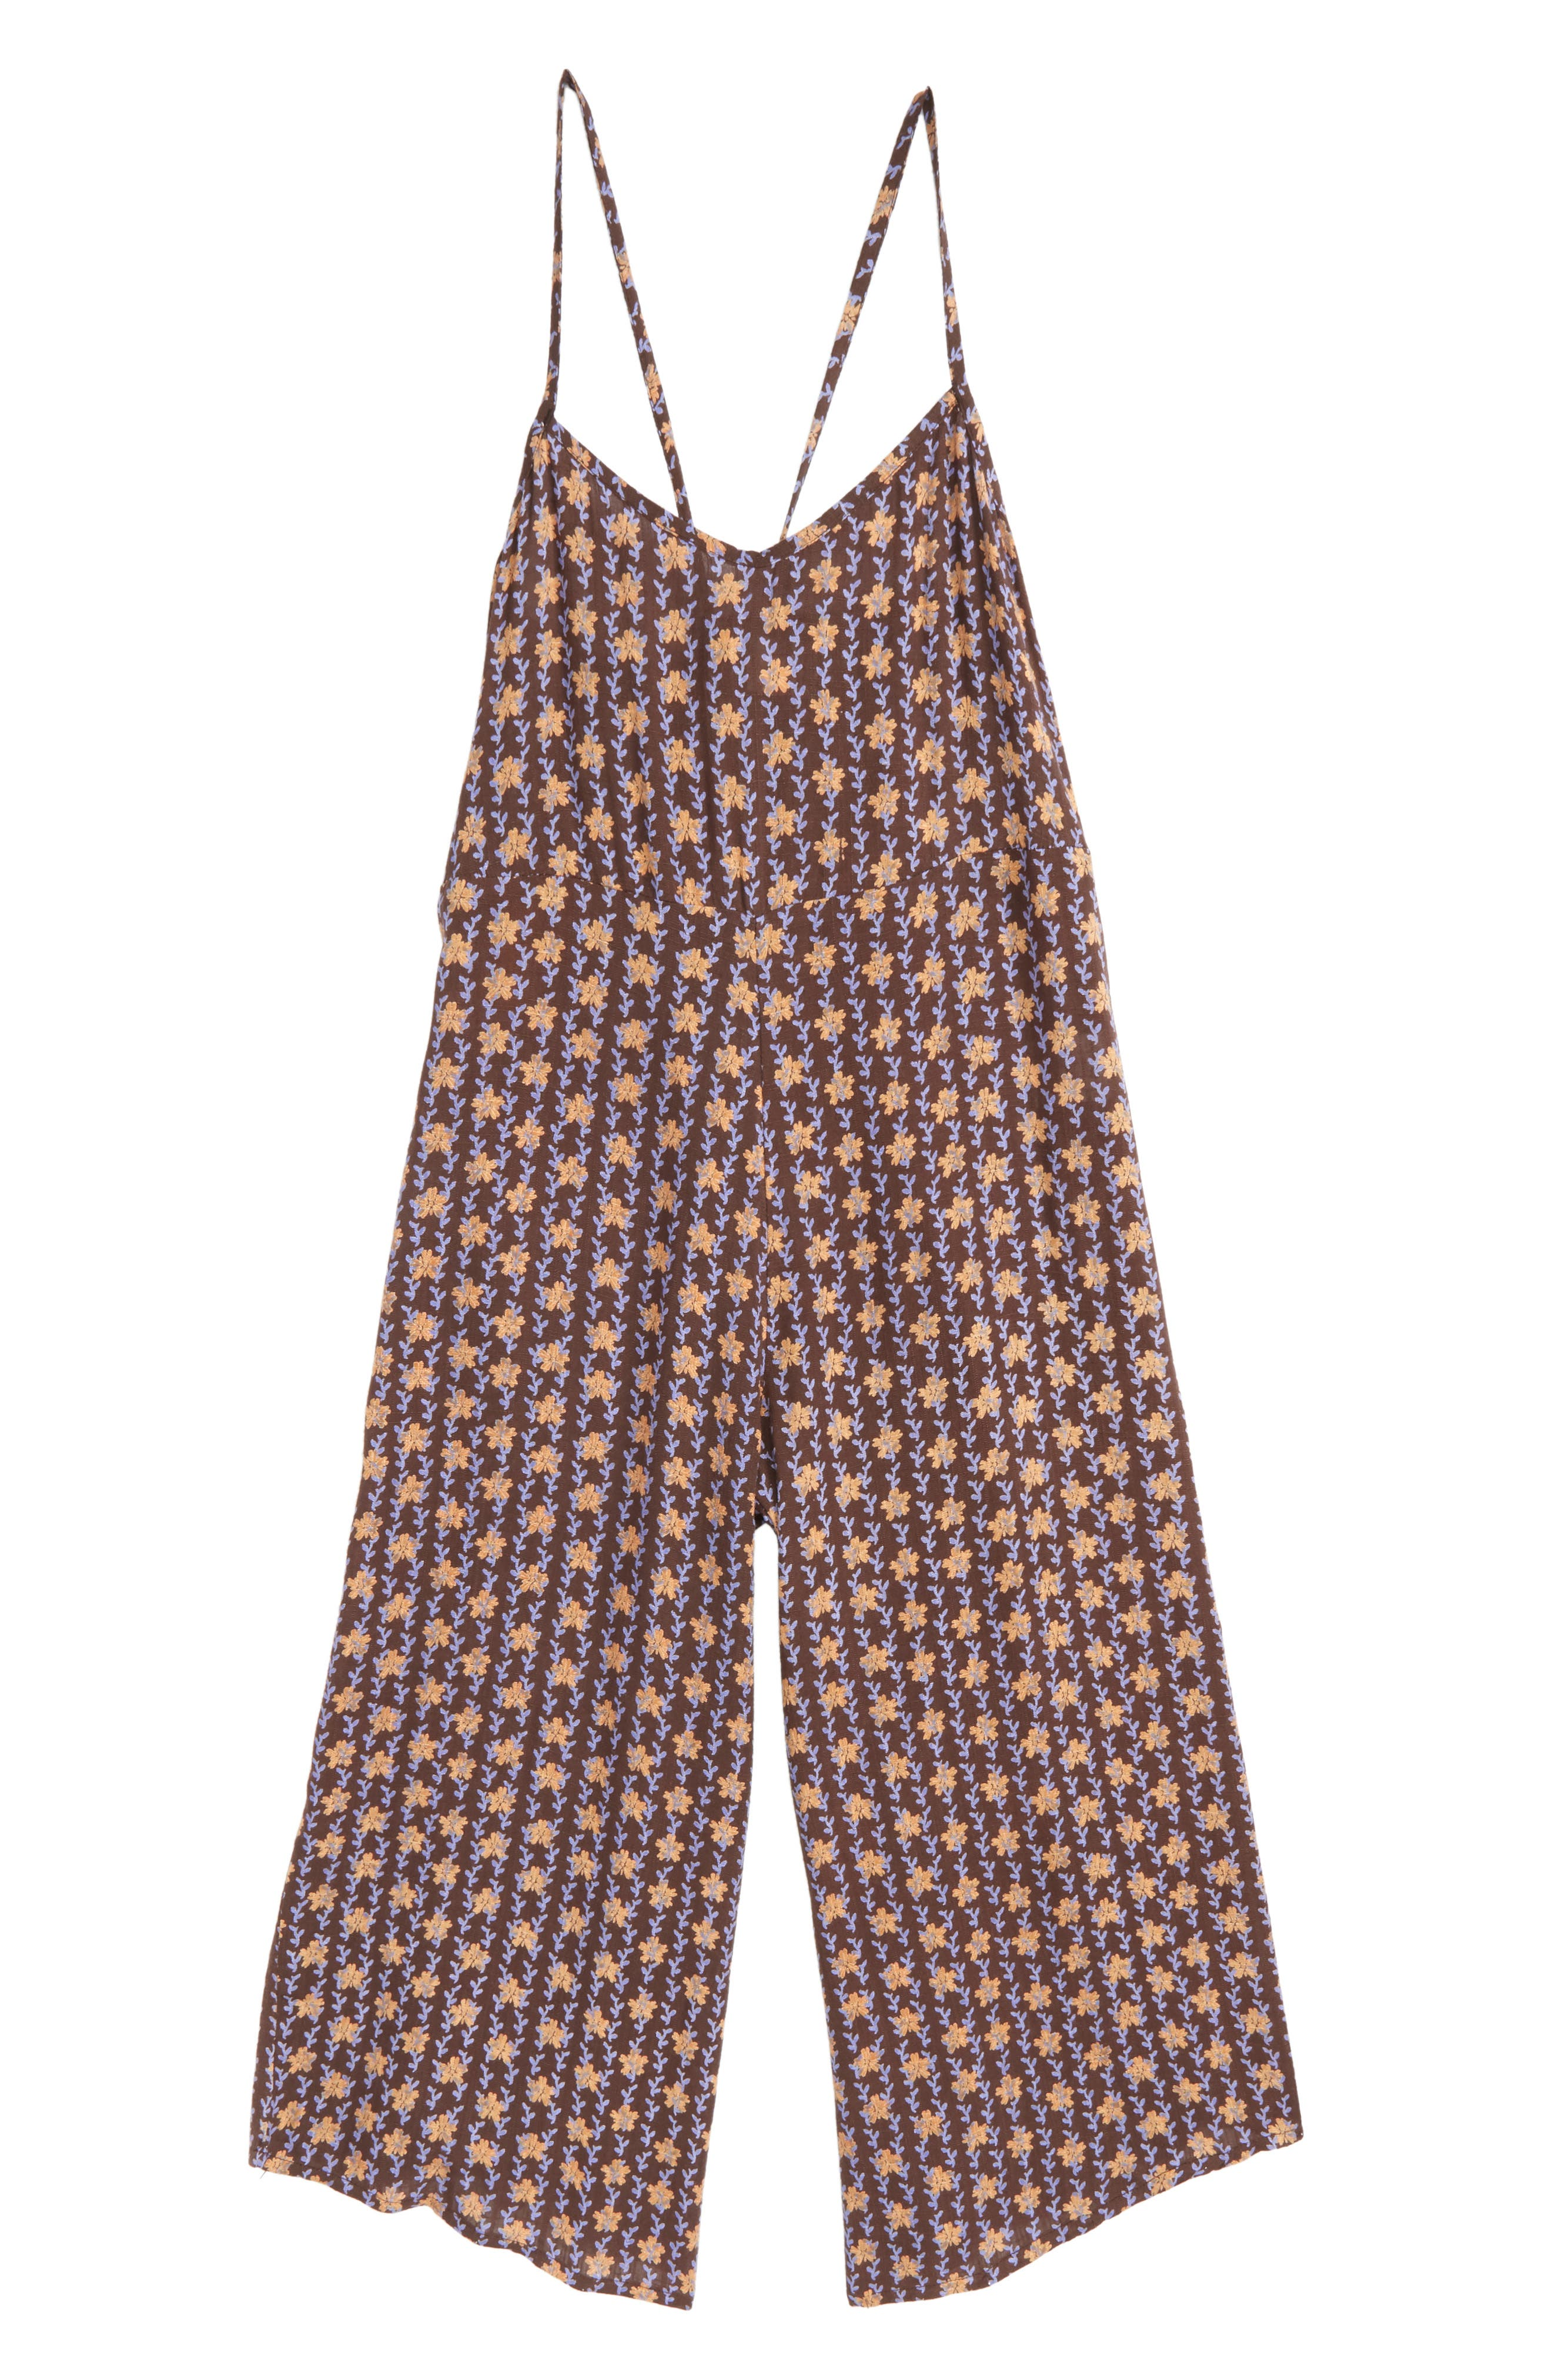 O'NEILL, Darcy Floral Romper, Main thumbnail 1, color, 003